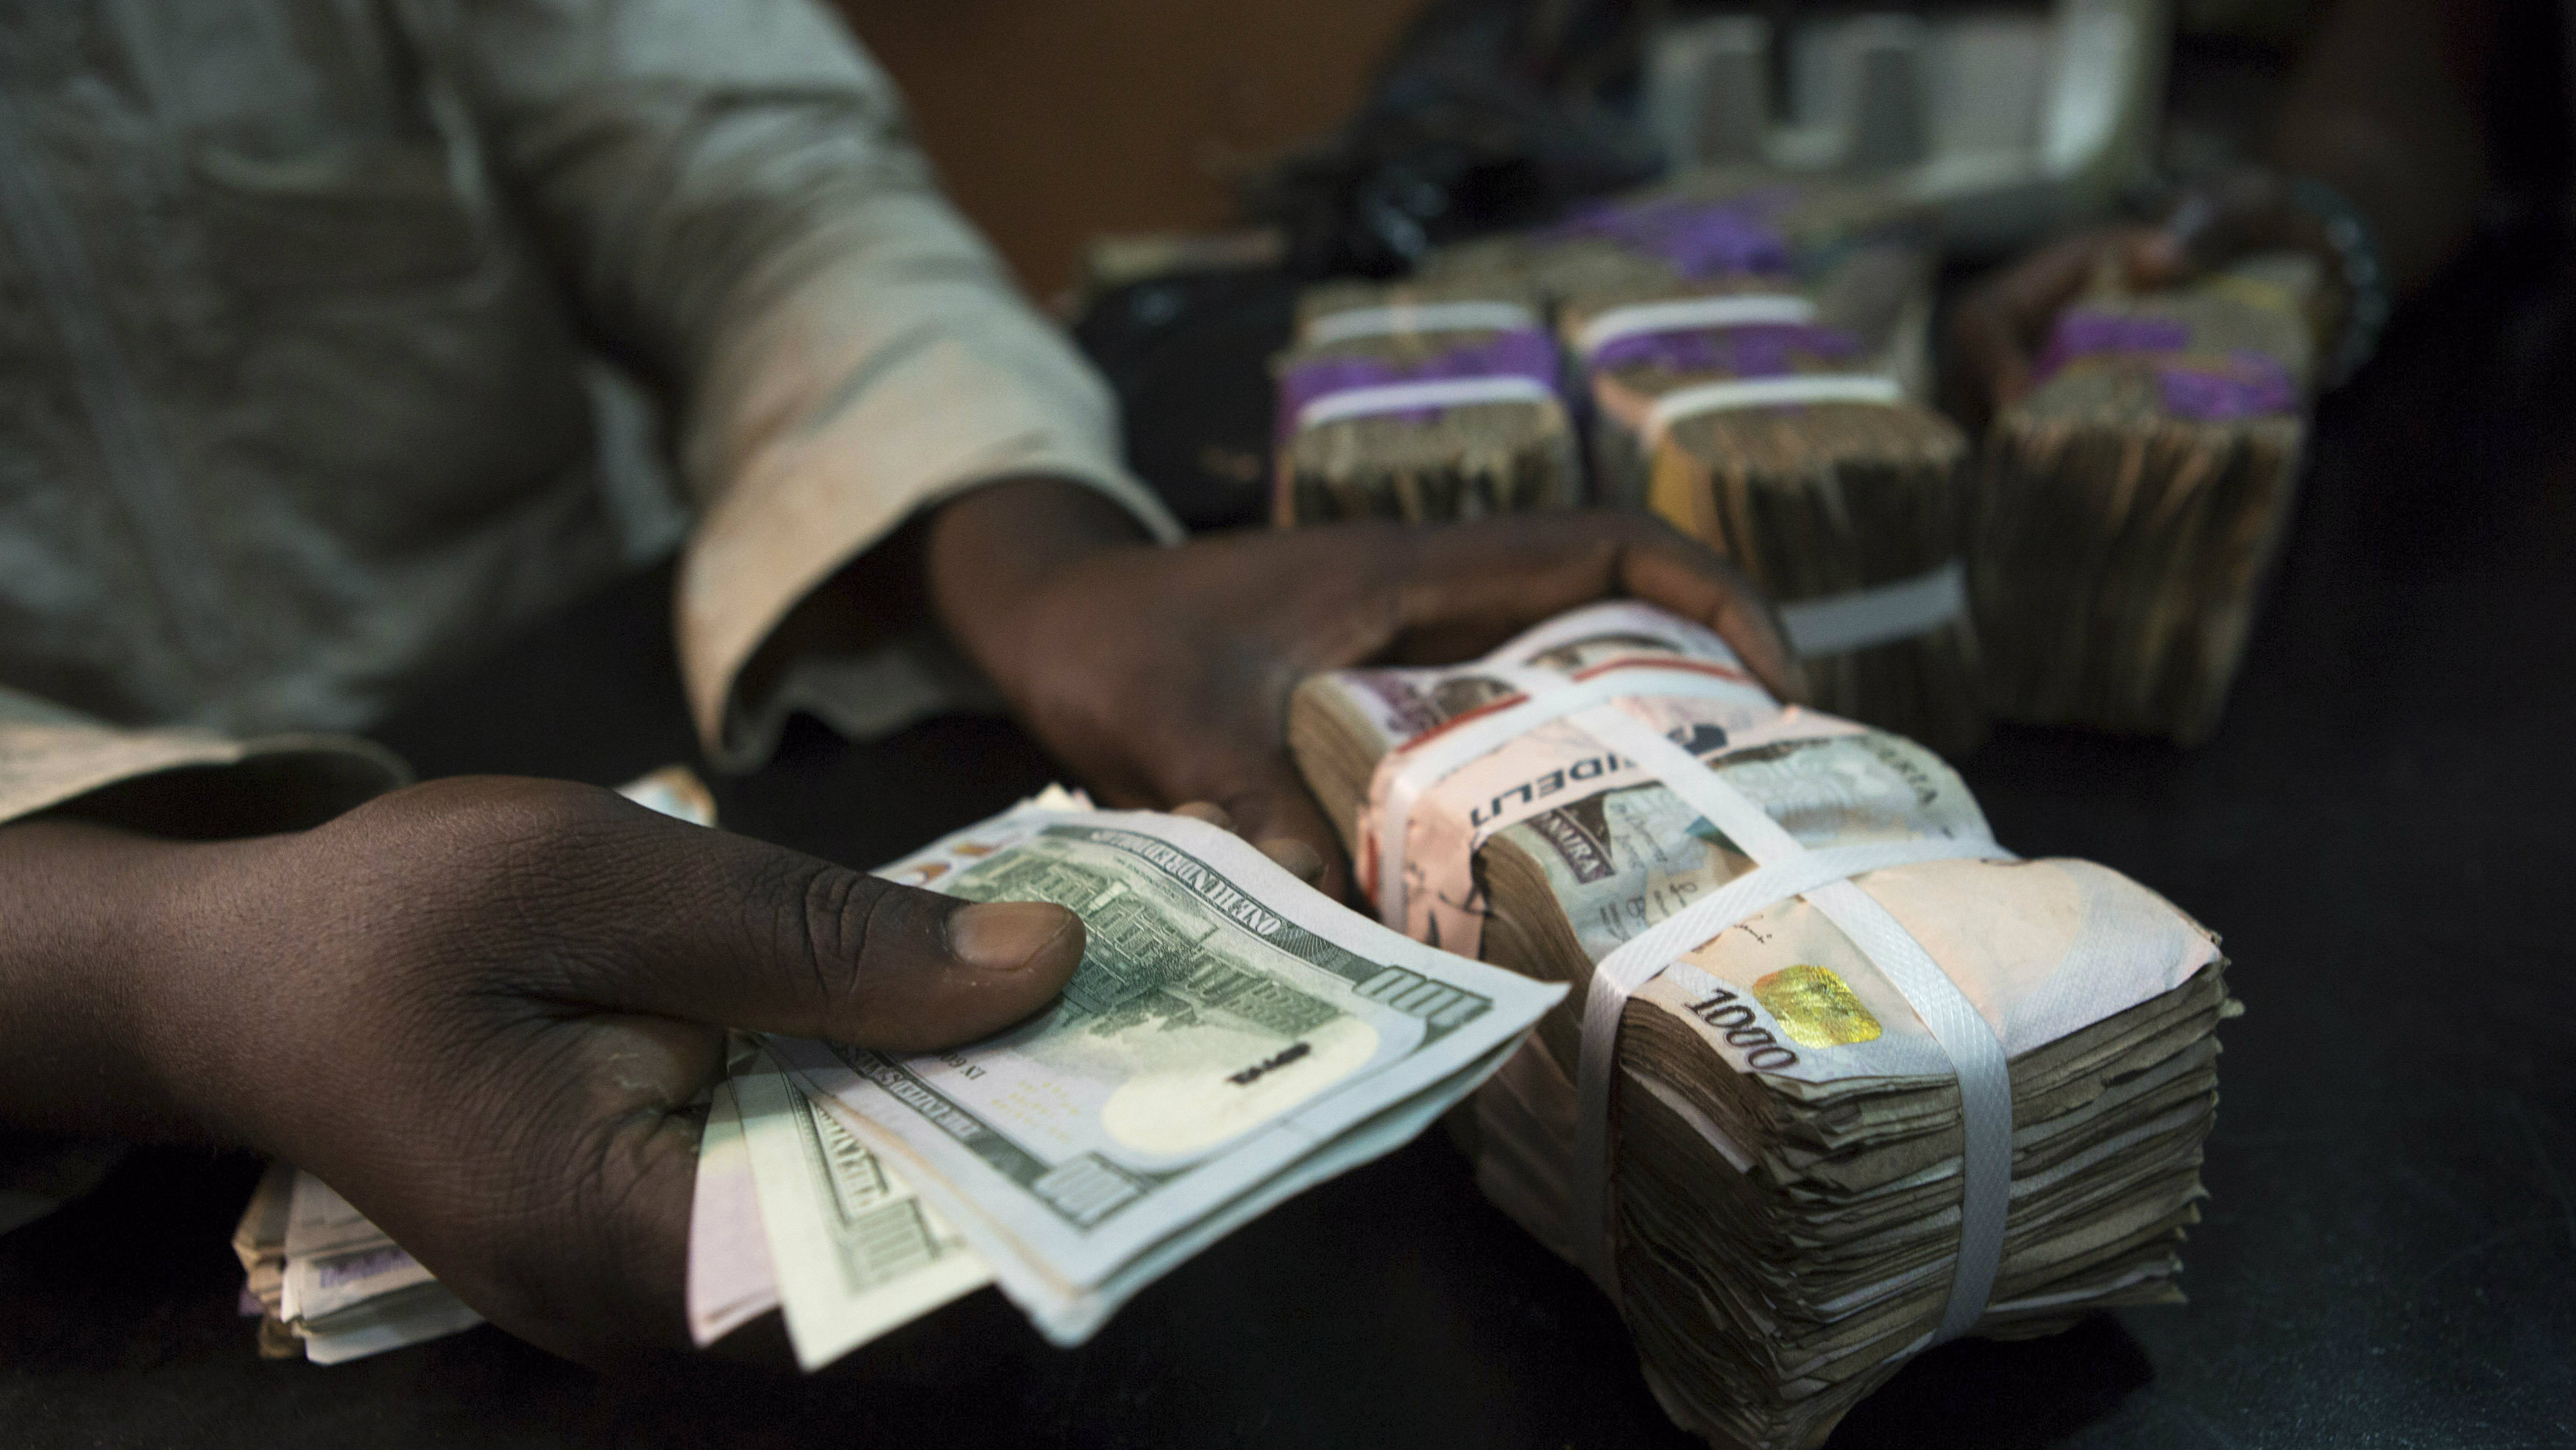 Nigeria's Central Bank is disrupting remittances startups in favor